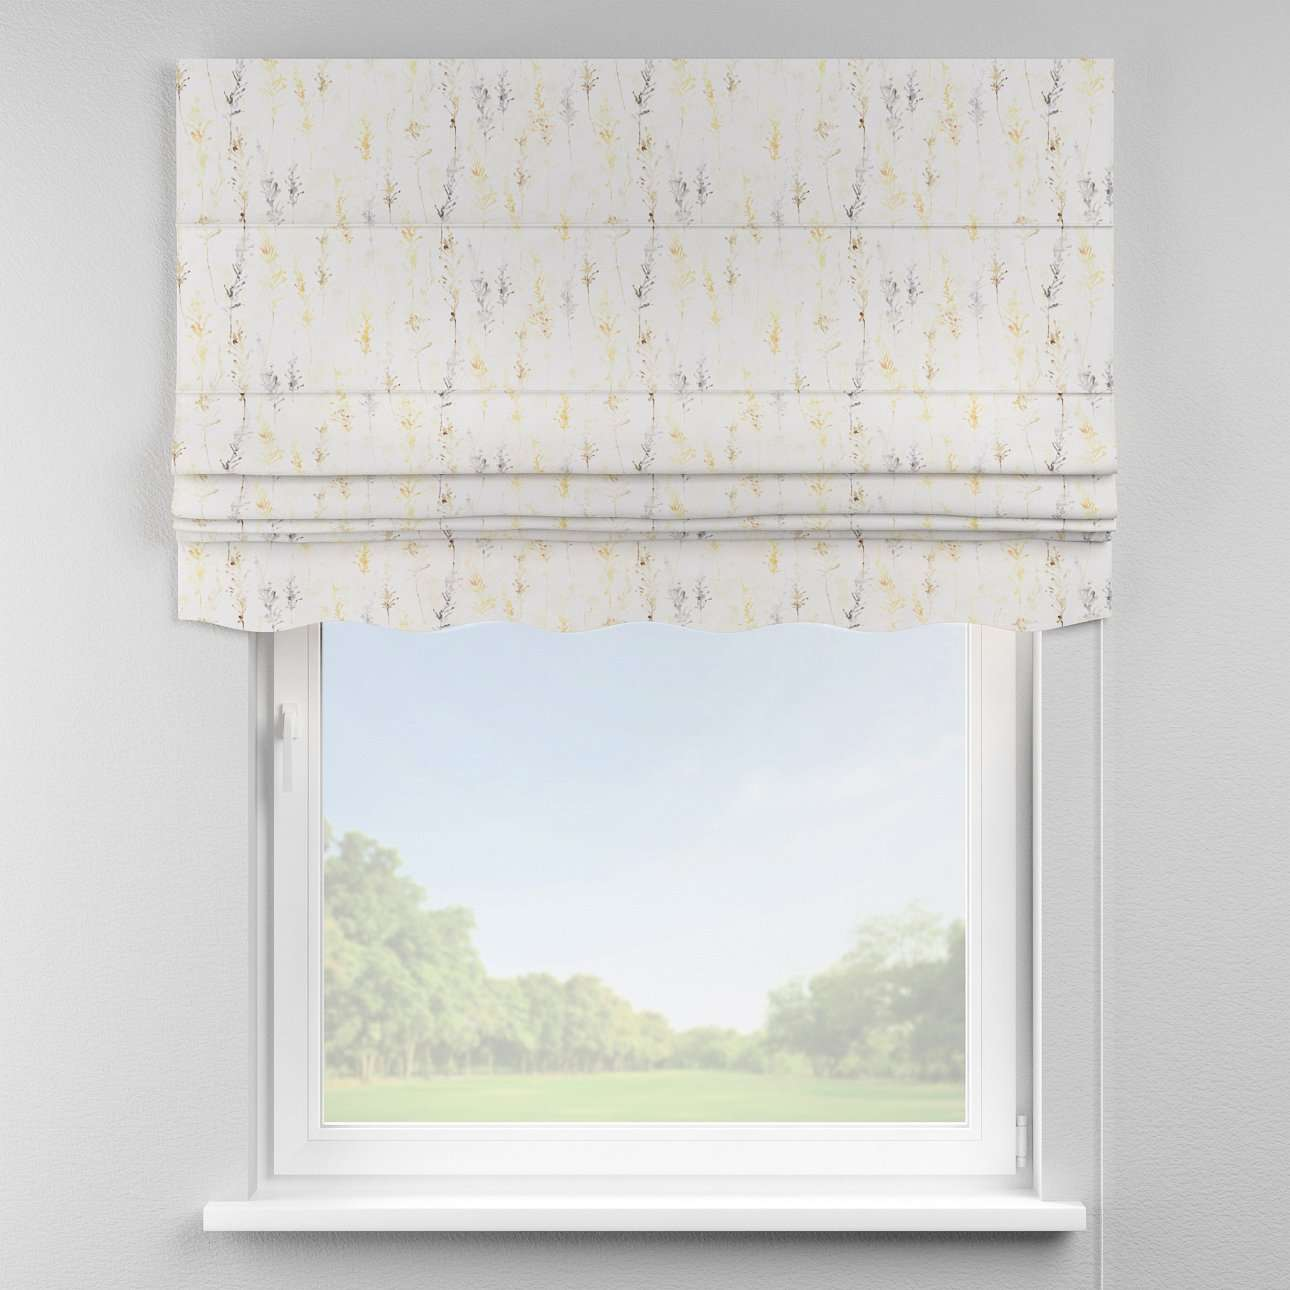 Florence roman blind  80 x 170 cm (31.5 x 67 inch) in collection Acapulco, fabric: 141-36